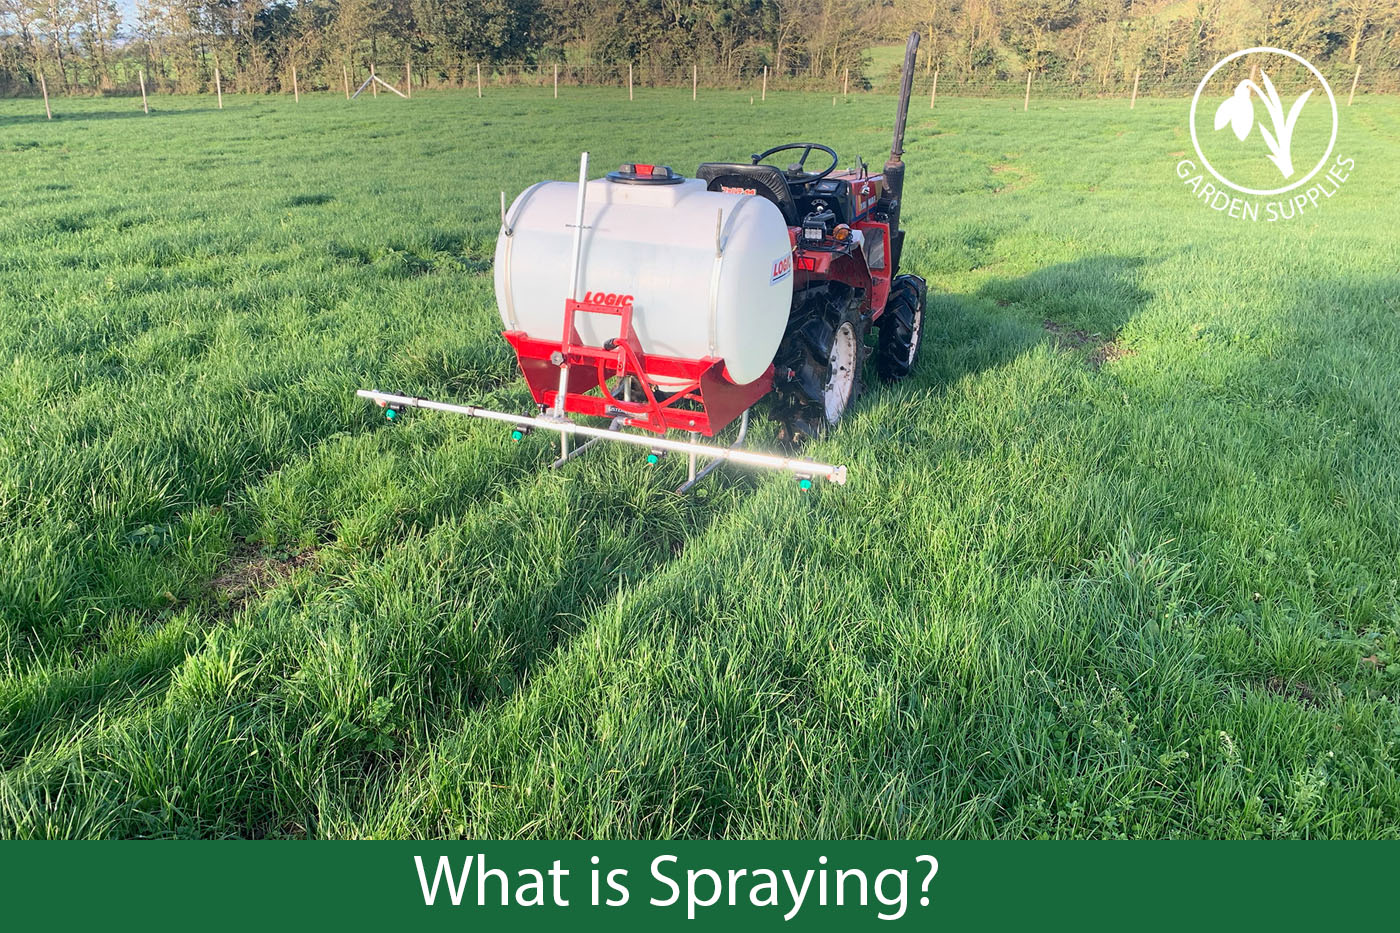 What is Spraying?